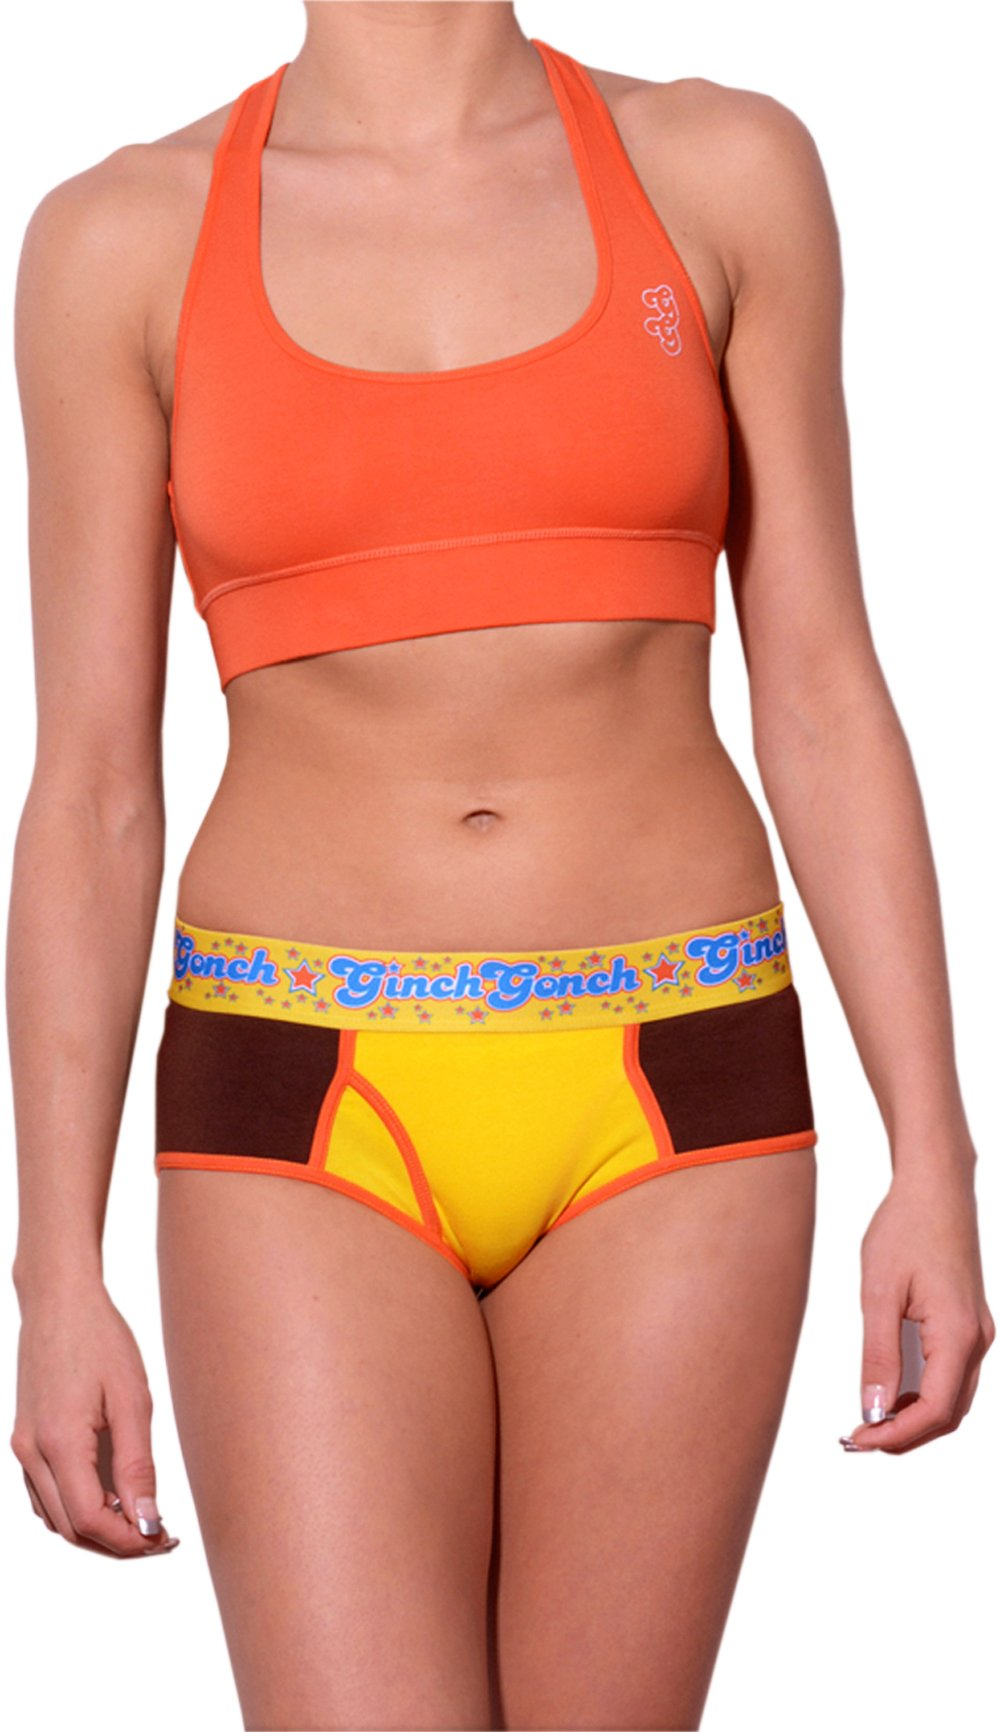 GG Ginch Gonch Lemon Heads women's underwear y front boy cut brief with yellow and brown panels, orange trim, and a printed yellow waistband. front. shown with orange sports bra.